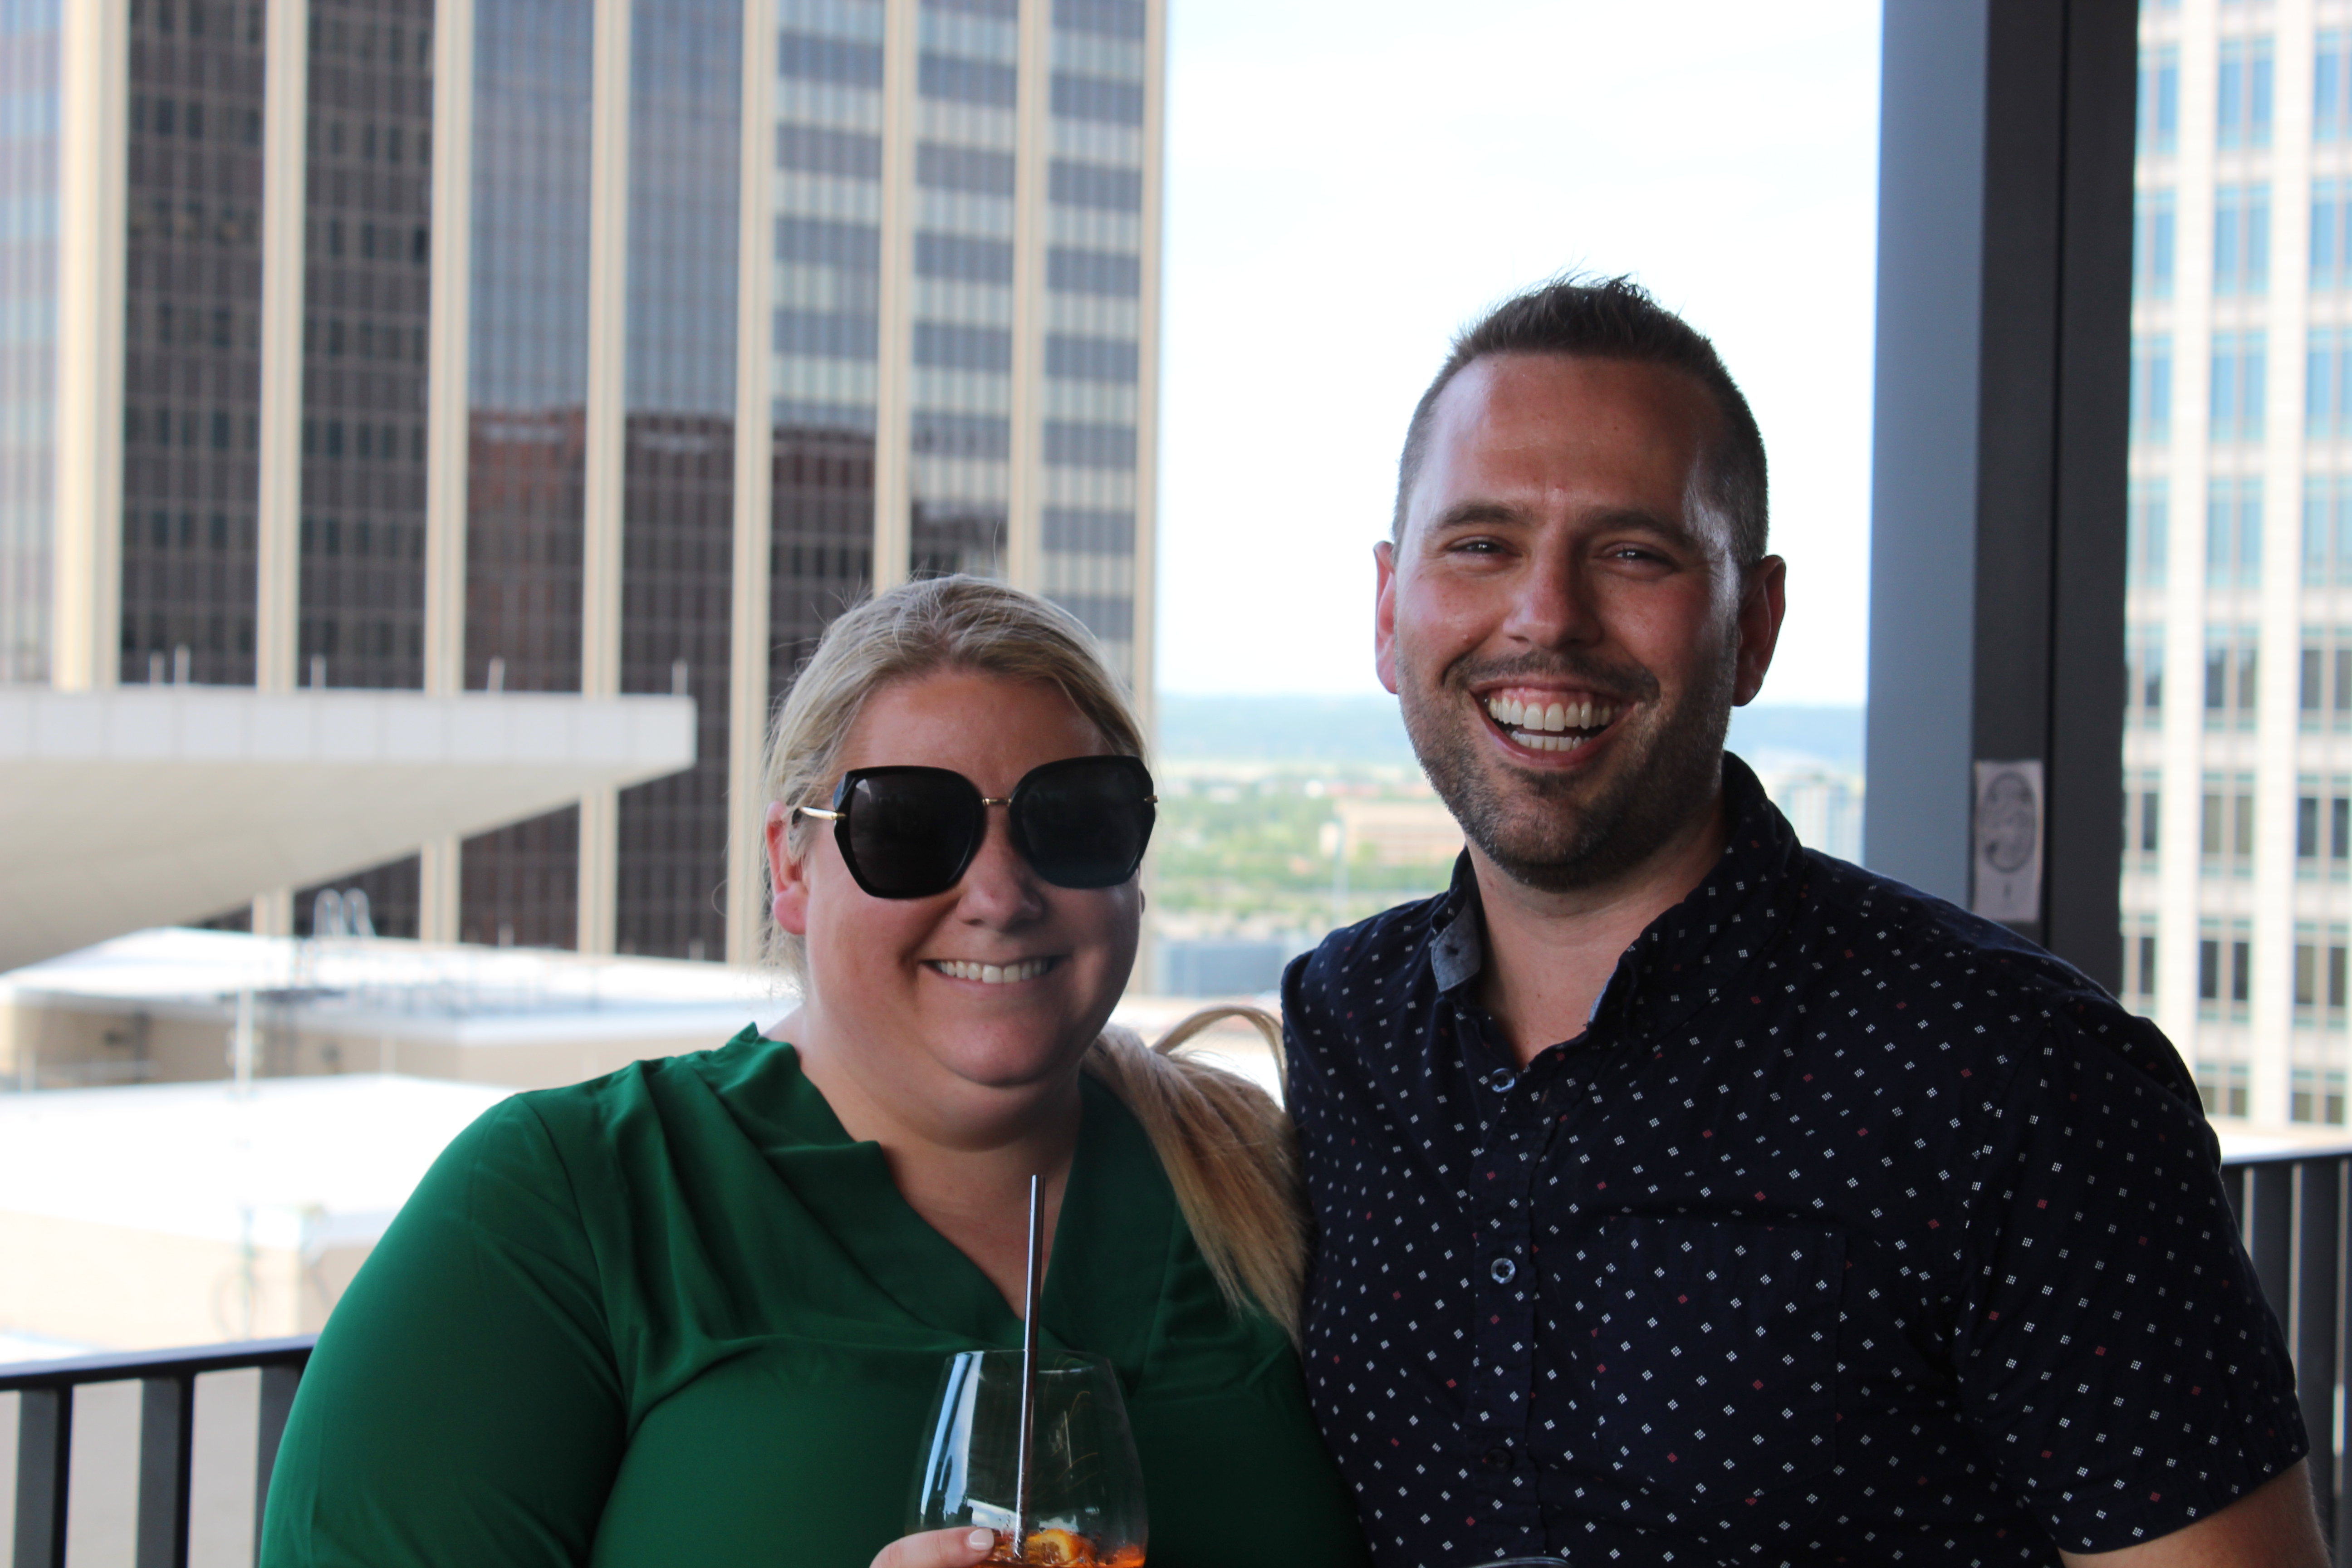 Paige Hall, left, and Josh Woolf smile during the inaugural OBA THAW meetup. (David Golbitz/Daily Record)